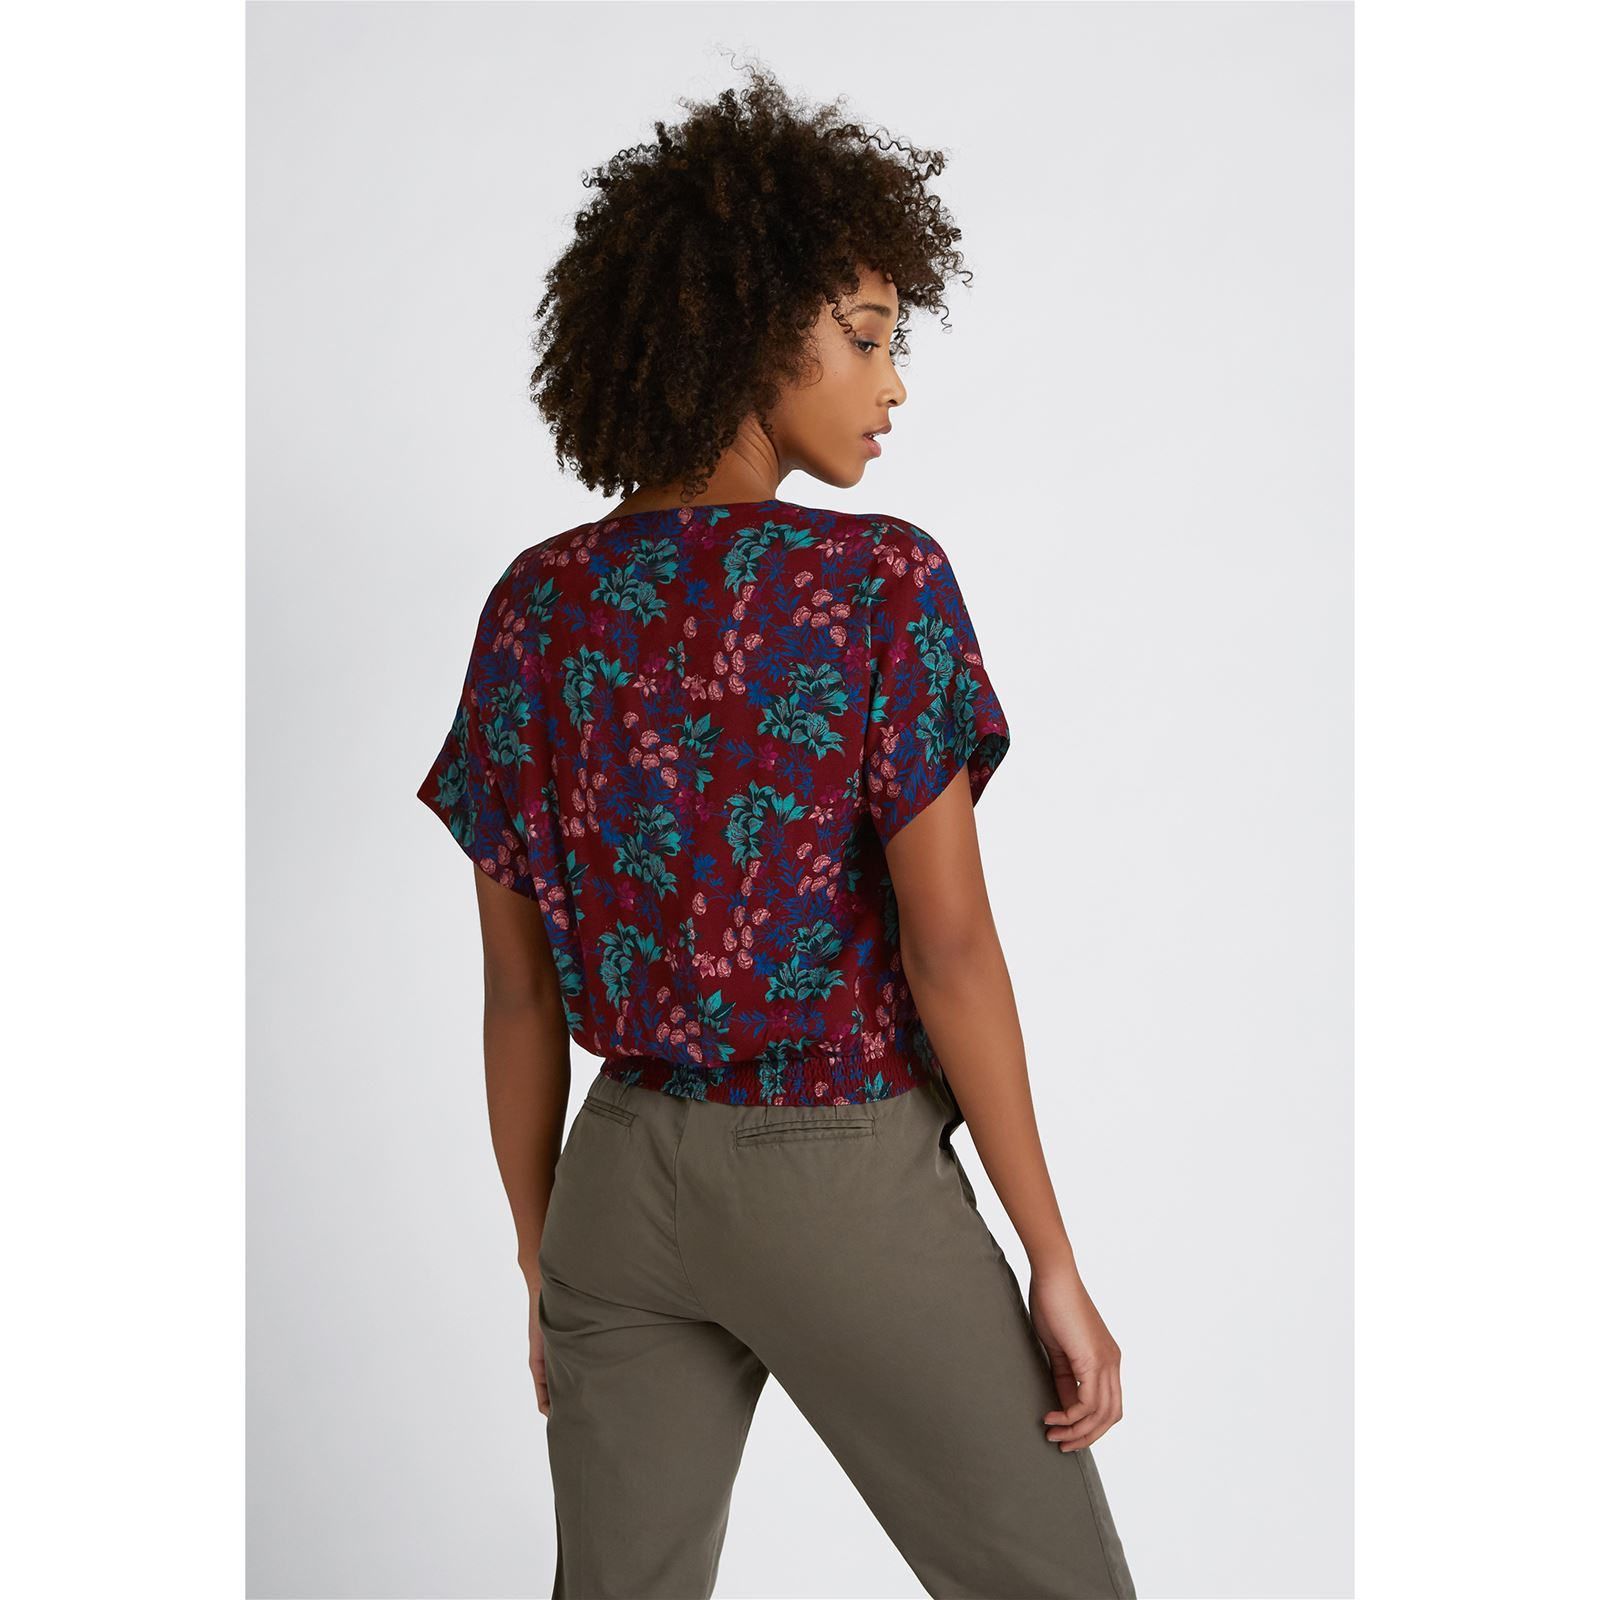 Anastasia Blouse Cassis Cassis Blouse Cassis Anastasia Anastasia Anastasia Blouse Blouse Cassis Anastasia Blouse Cassis TlKJ3Fu1c